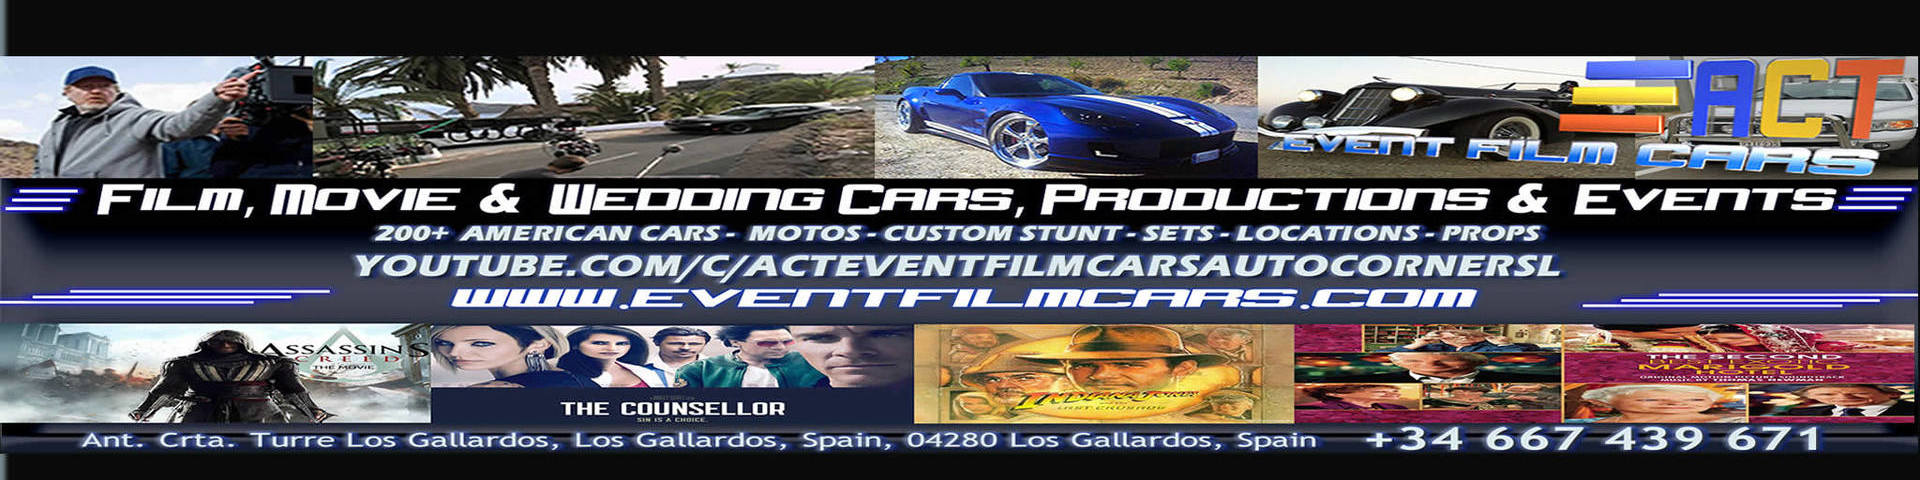 Event Film Cars